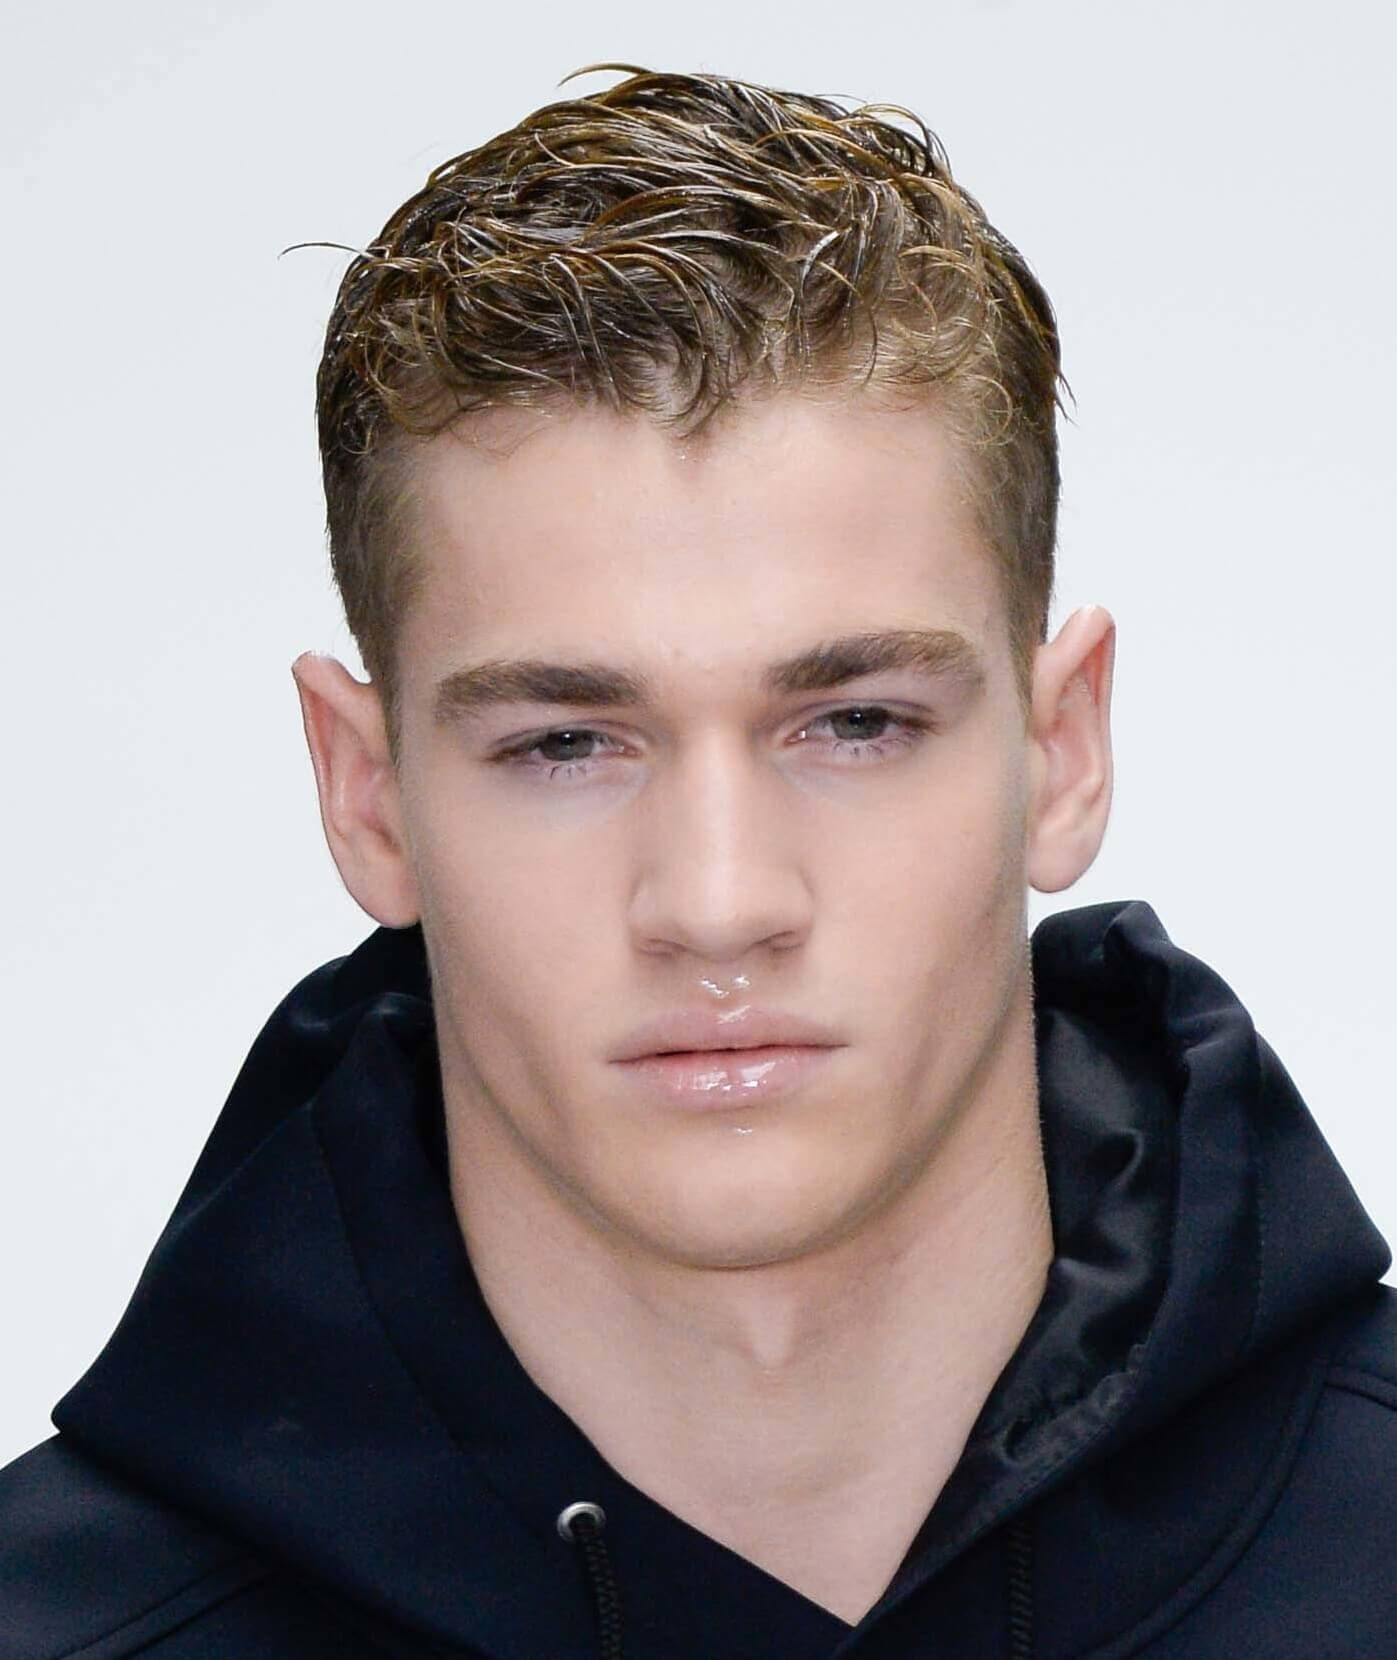 Hairstyles For Men With Thick Hair Wet Look